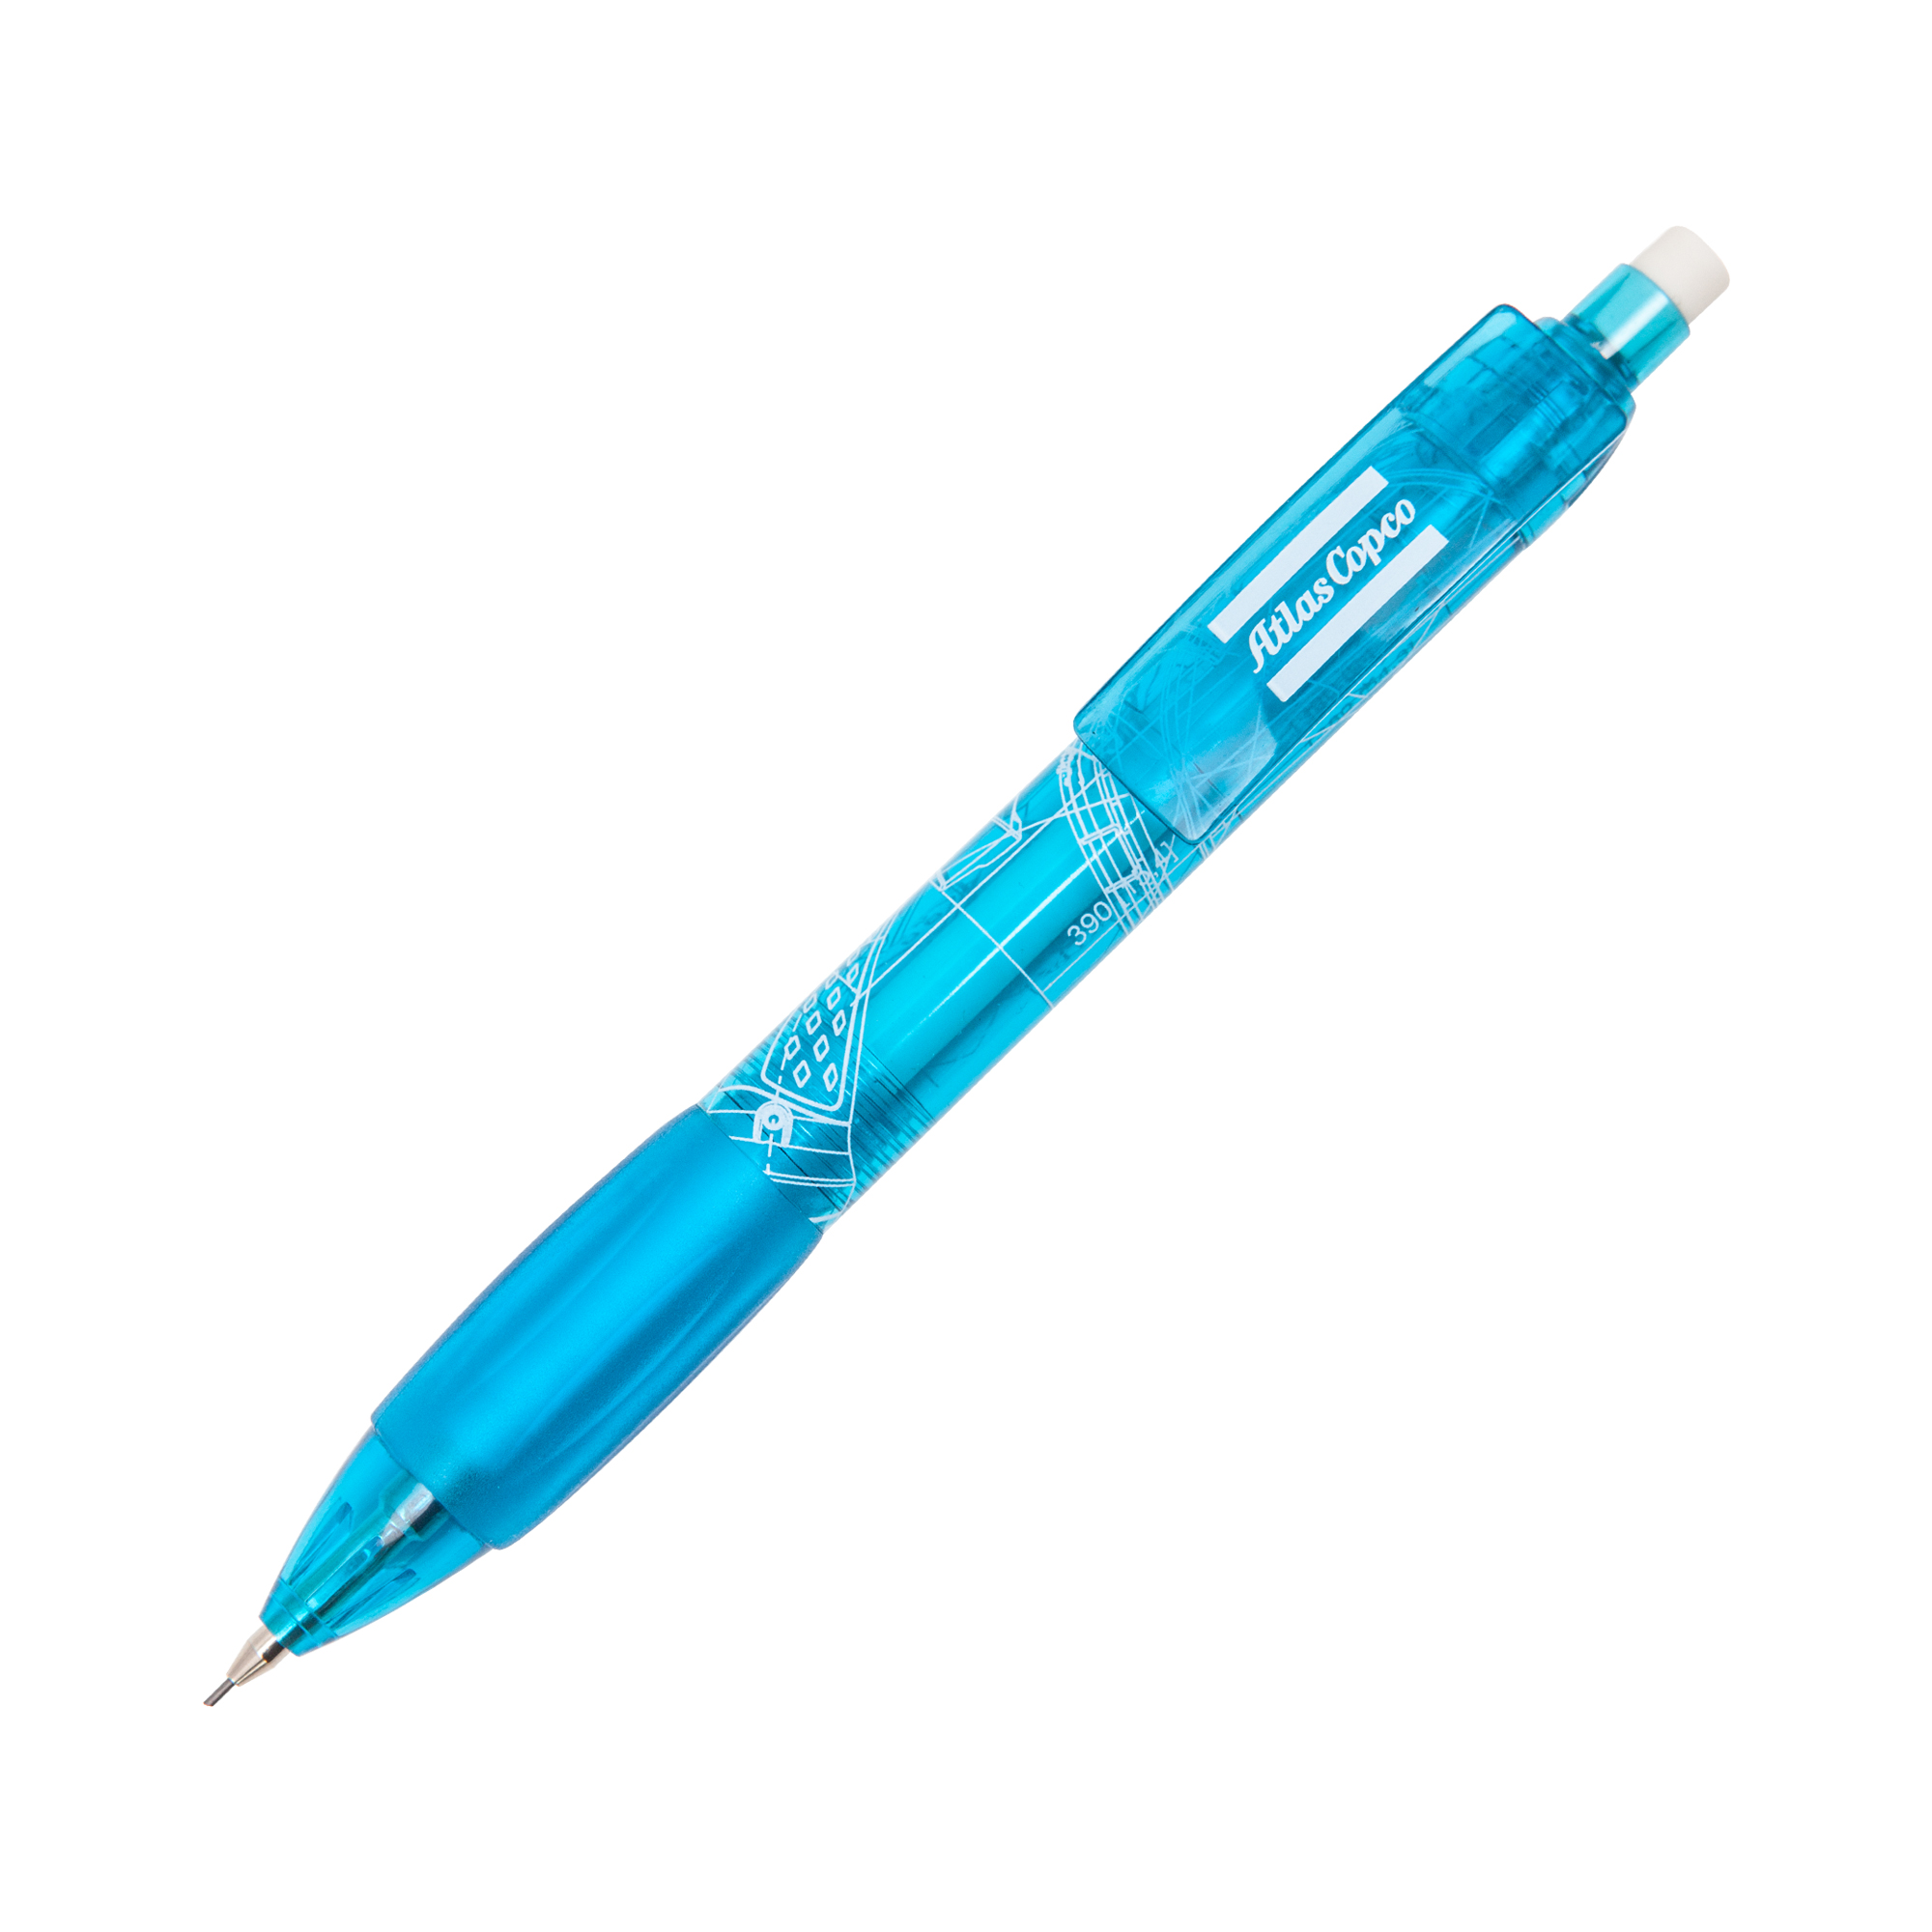 Pencil in Atlas Copco blue with 0,7 mm pin. The pencils are delivered in an Atlas Copco paper box. The BluePrint pattern is based on Atlas Copco´s key innovations. By merging blueprints from all Atlas Copcos business areas, a unique graphic pattern has been created.